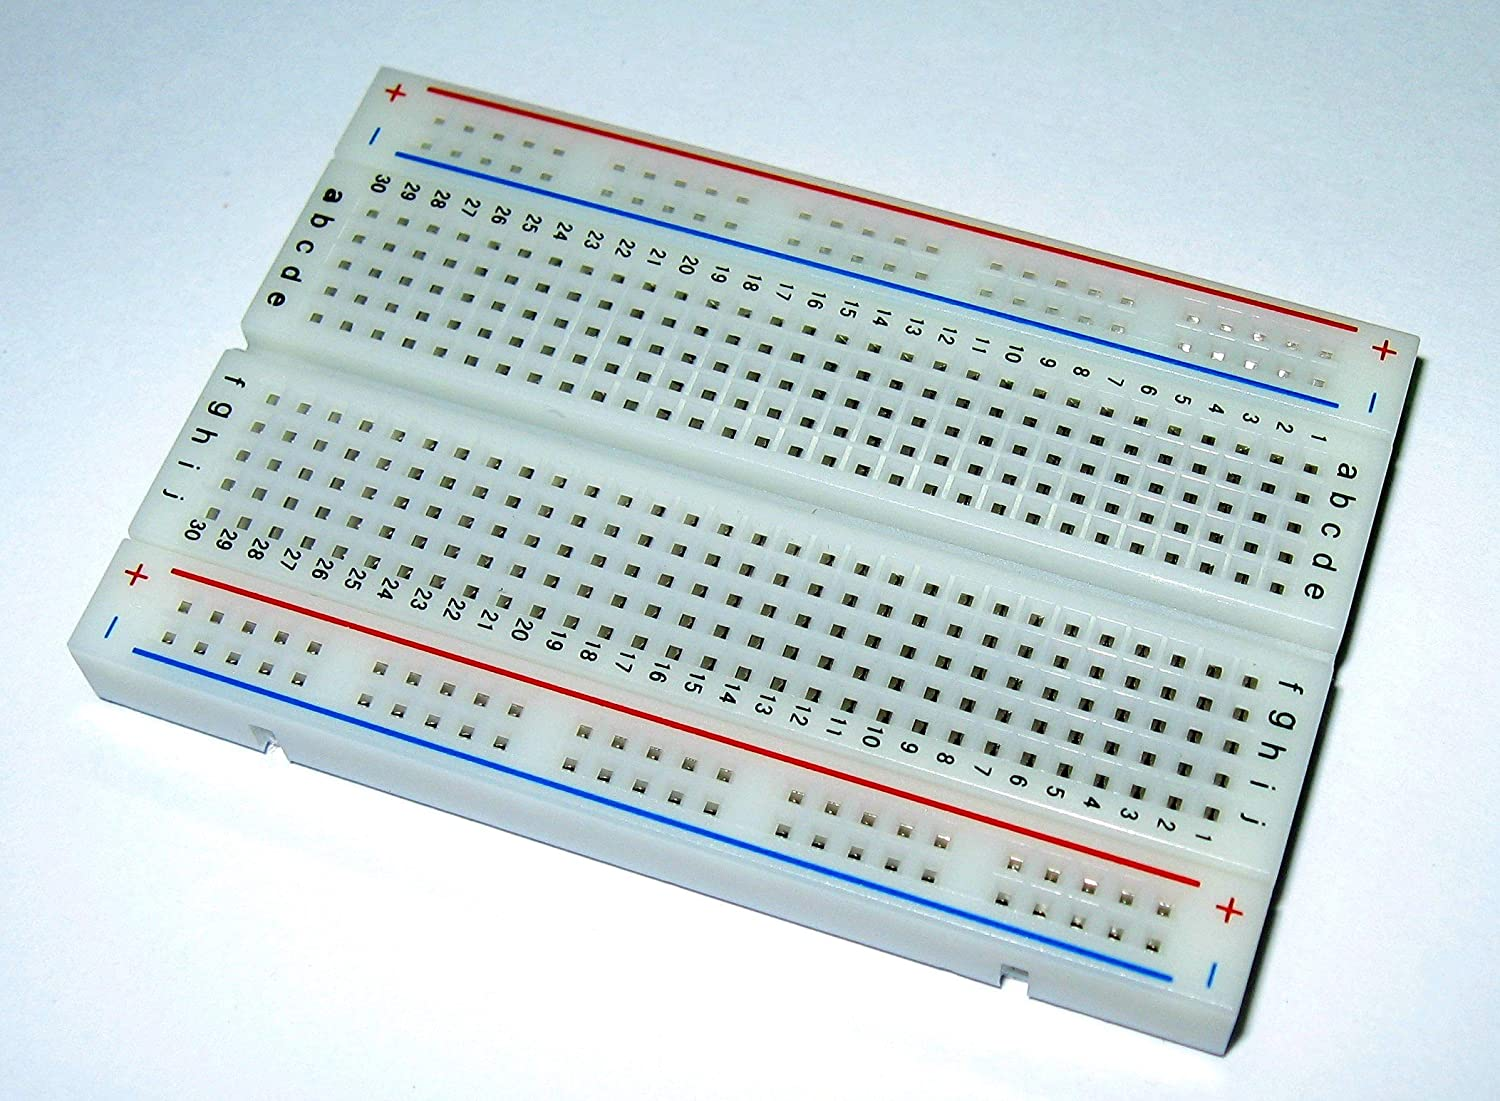 BB400 Solderless Plug-in BreadBoard, 400 tie-points, 4: Amazon.co.uk ...